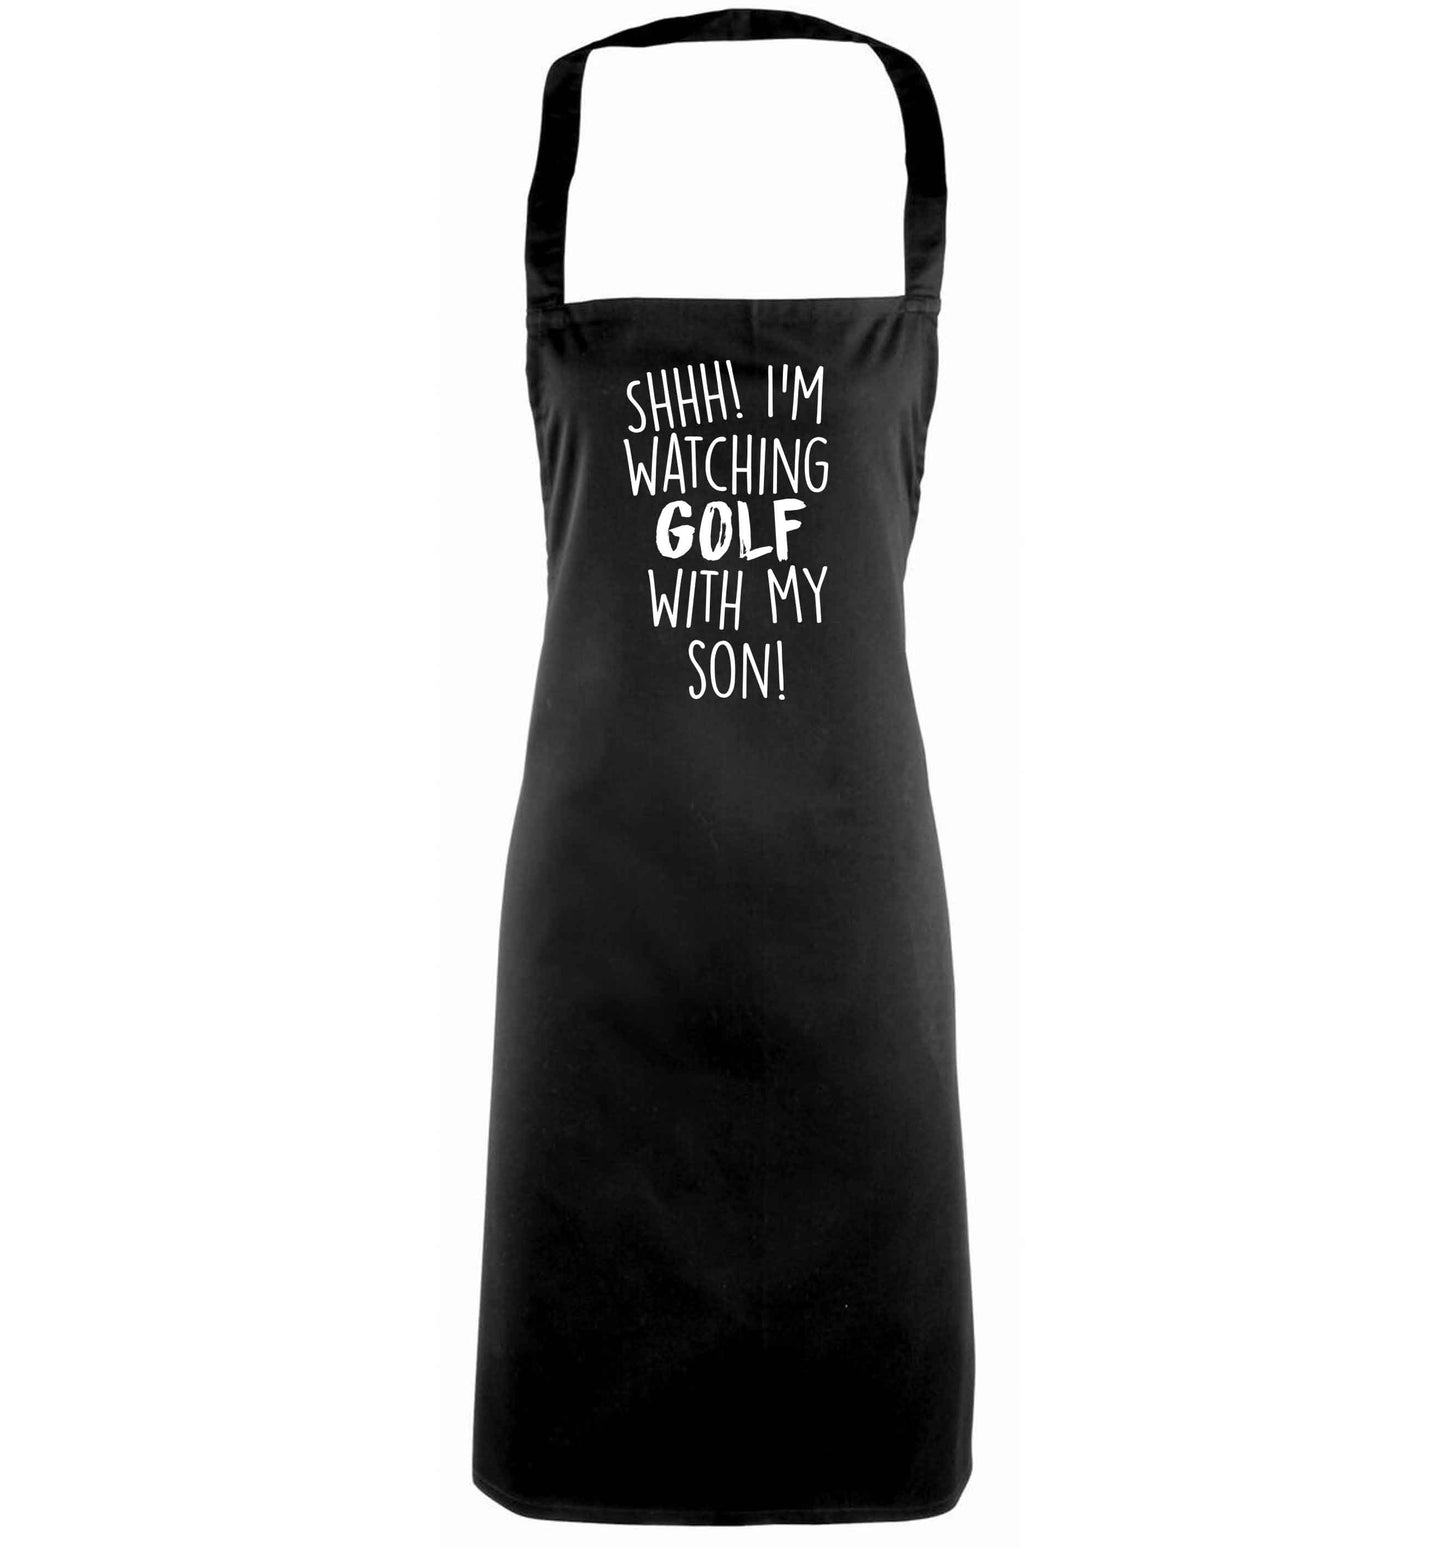 Shh I'm watching golf with my son black apron